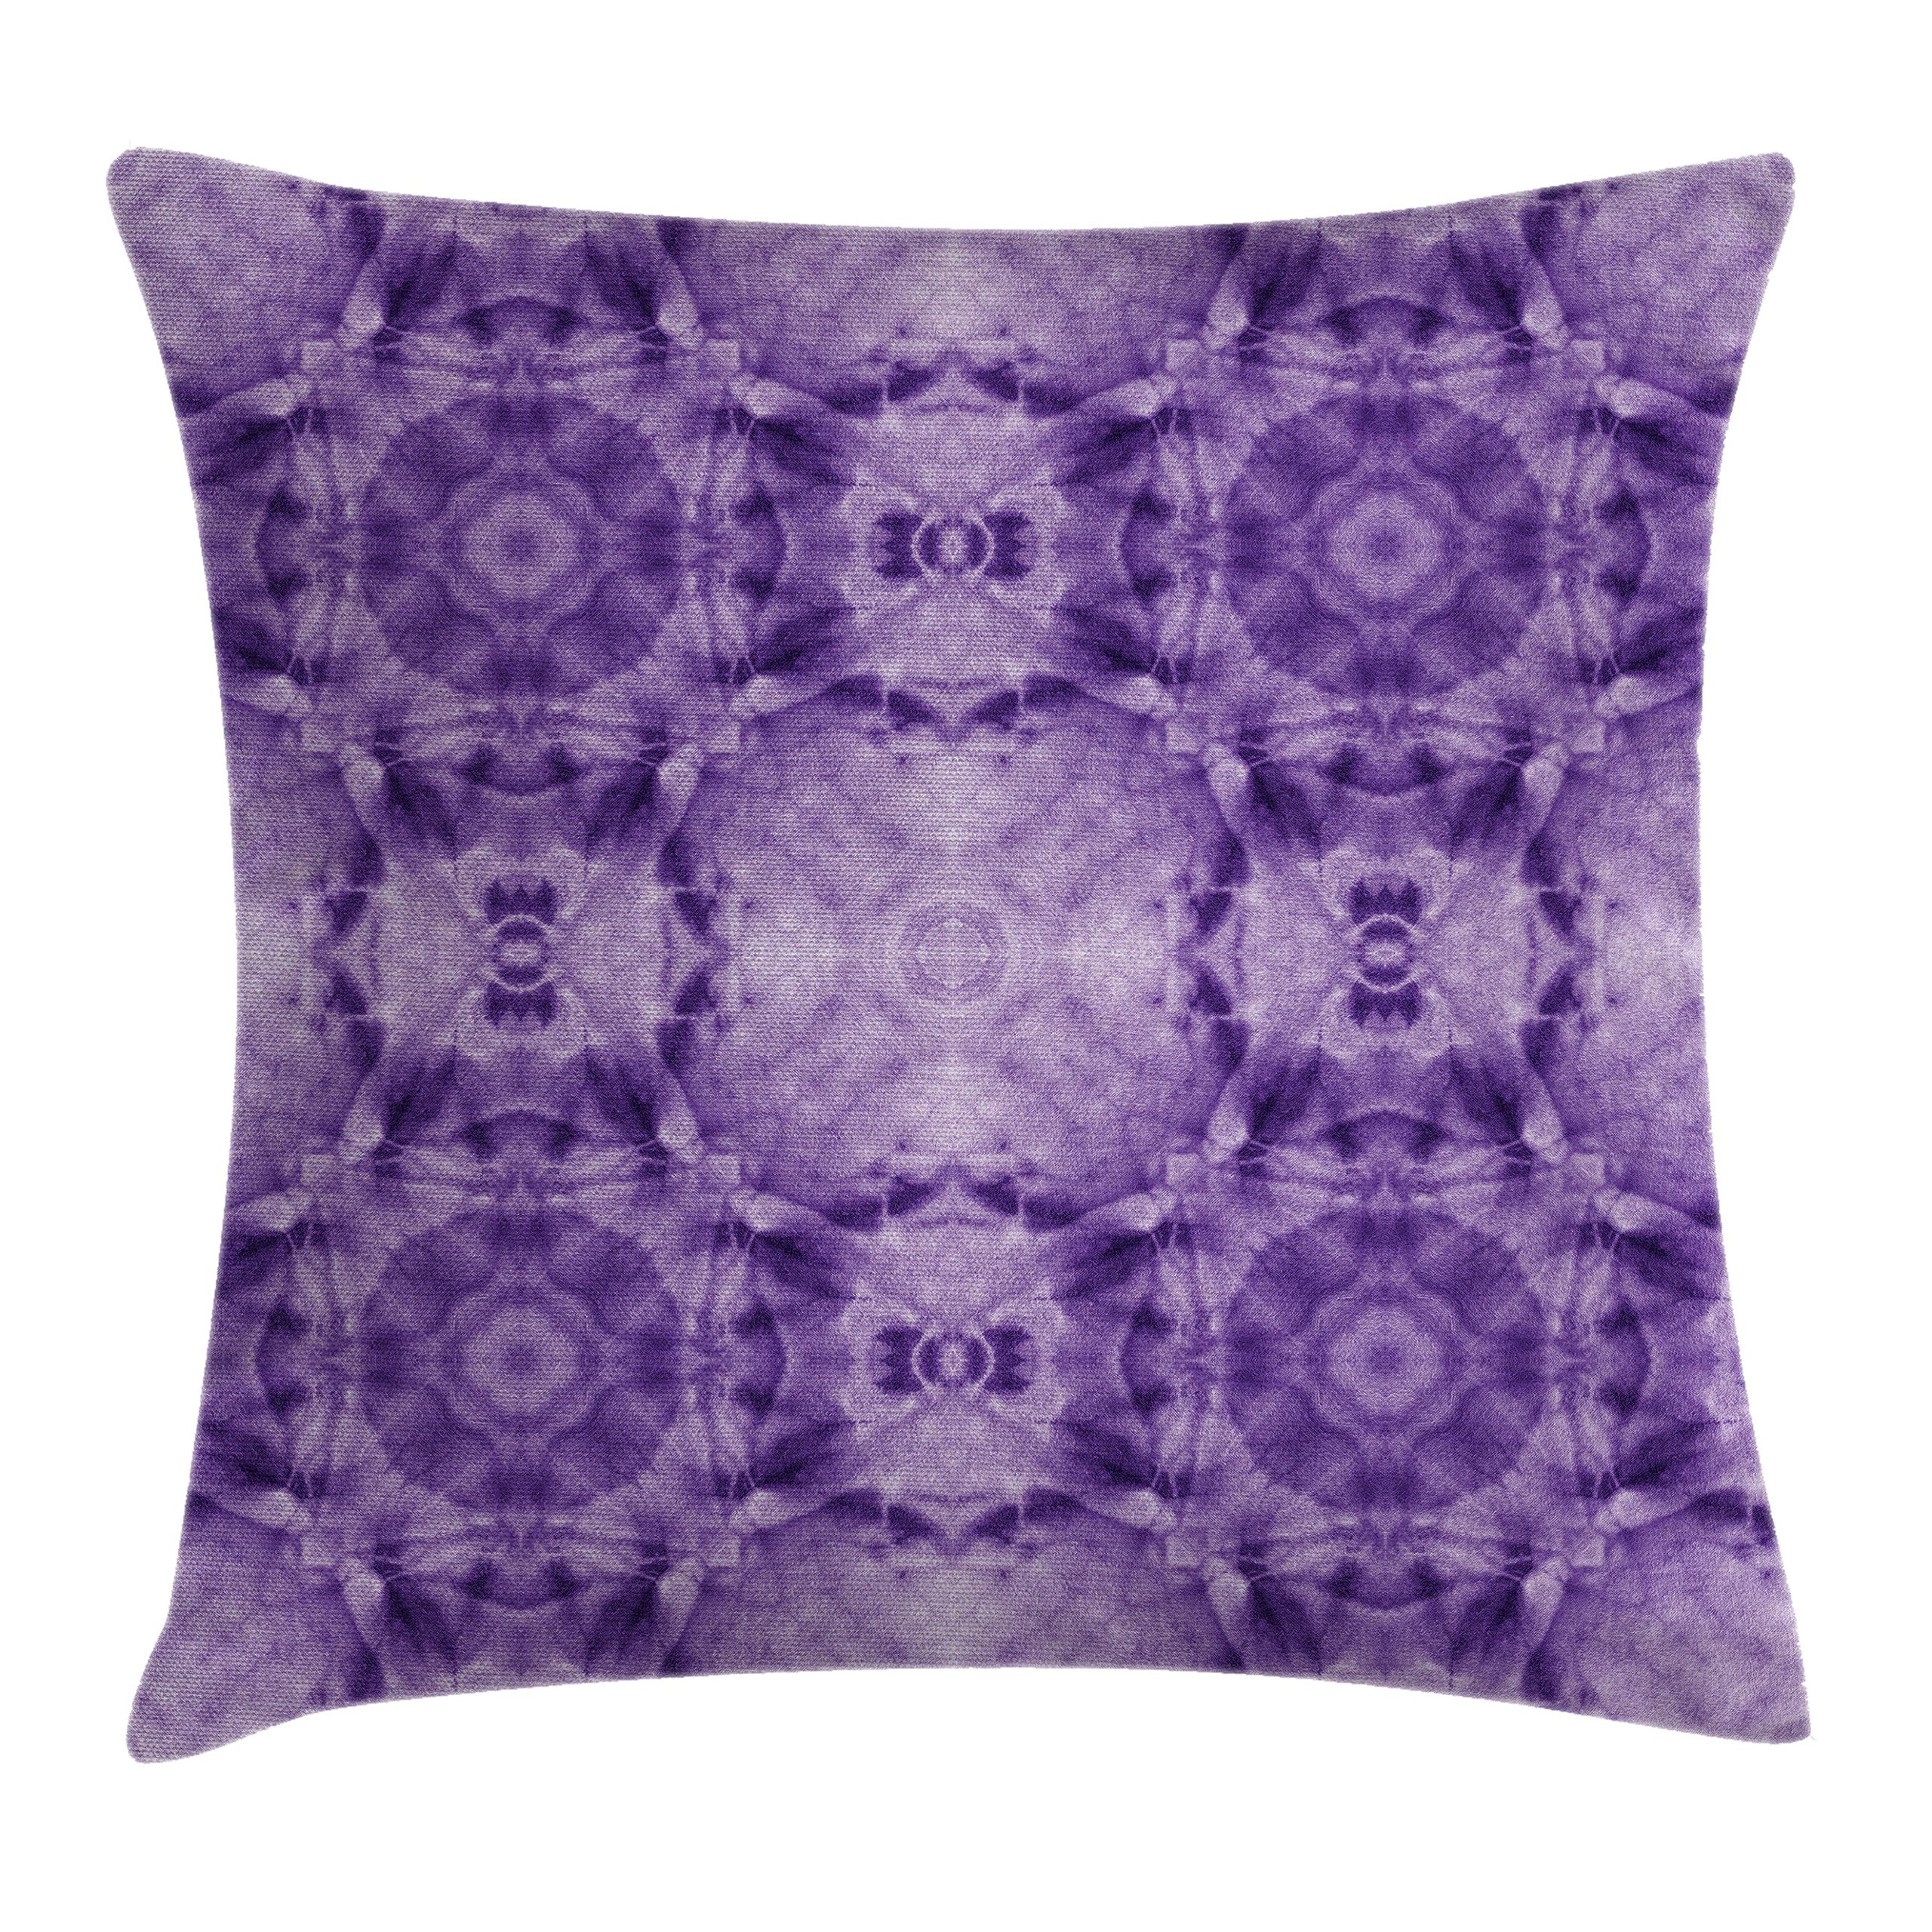 Ambesonne Tie Dye Decor Throw Pillow Cushion Cover by, Thai Style Motif Generated with Square Shaped Kaleidoscope Murky Toned Forms, Decorative Square Accent Pillow Case, 20 X 20 Inches, Purple